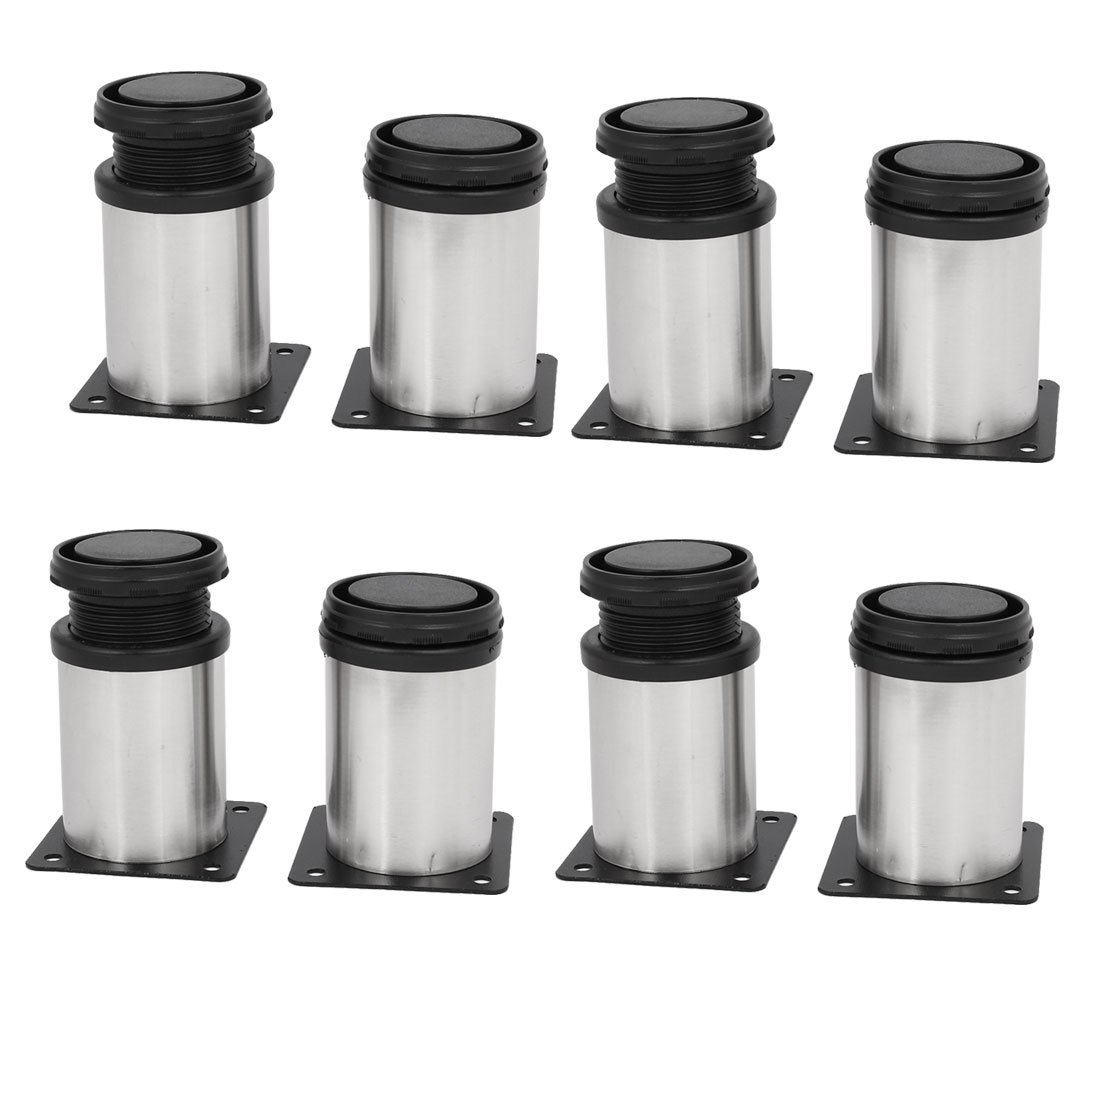 uxcell 50mm x 80mm Metal Adjustable Cabinet Leg Feet Round Stand 8PCS by uxcell (Image #1)